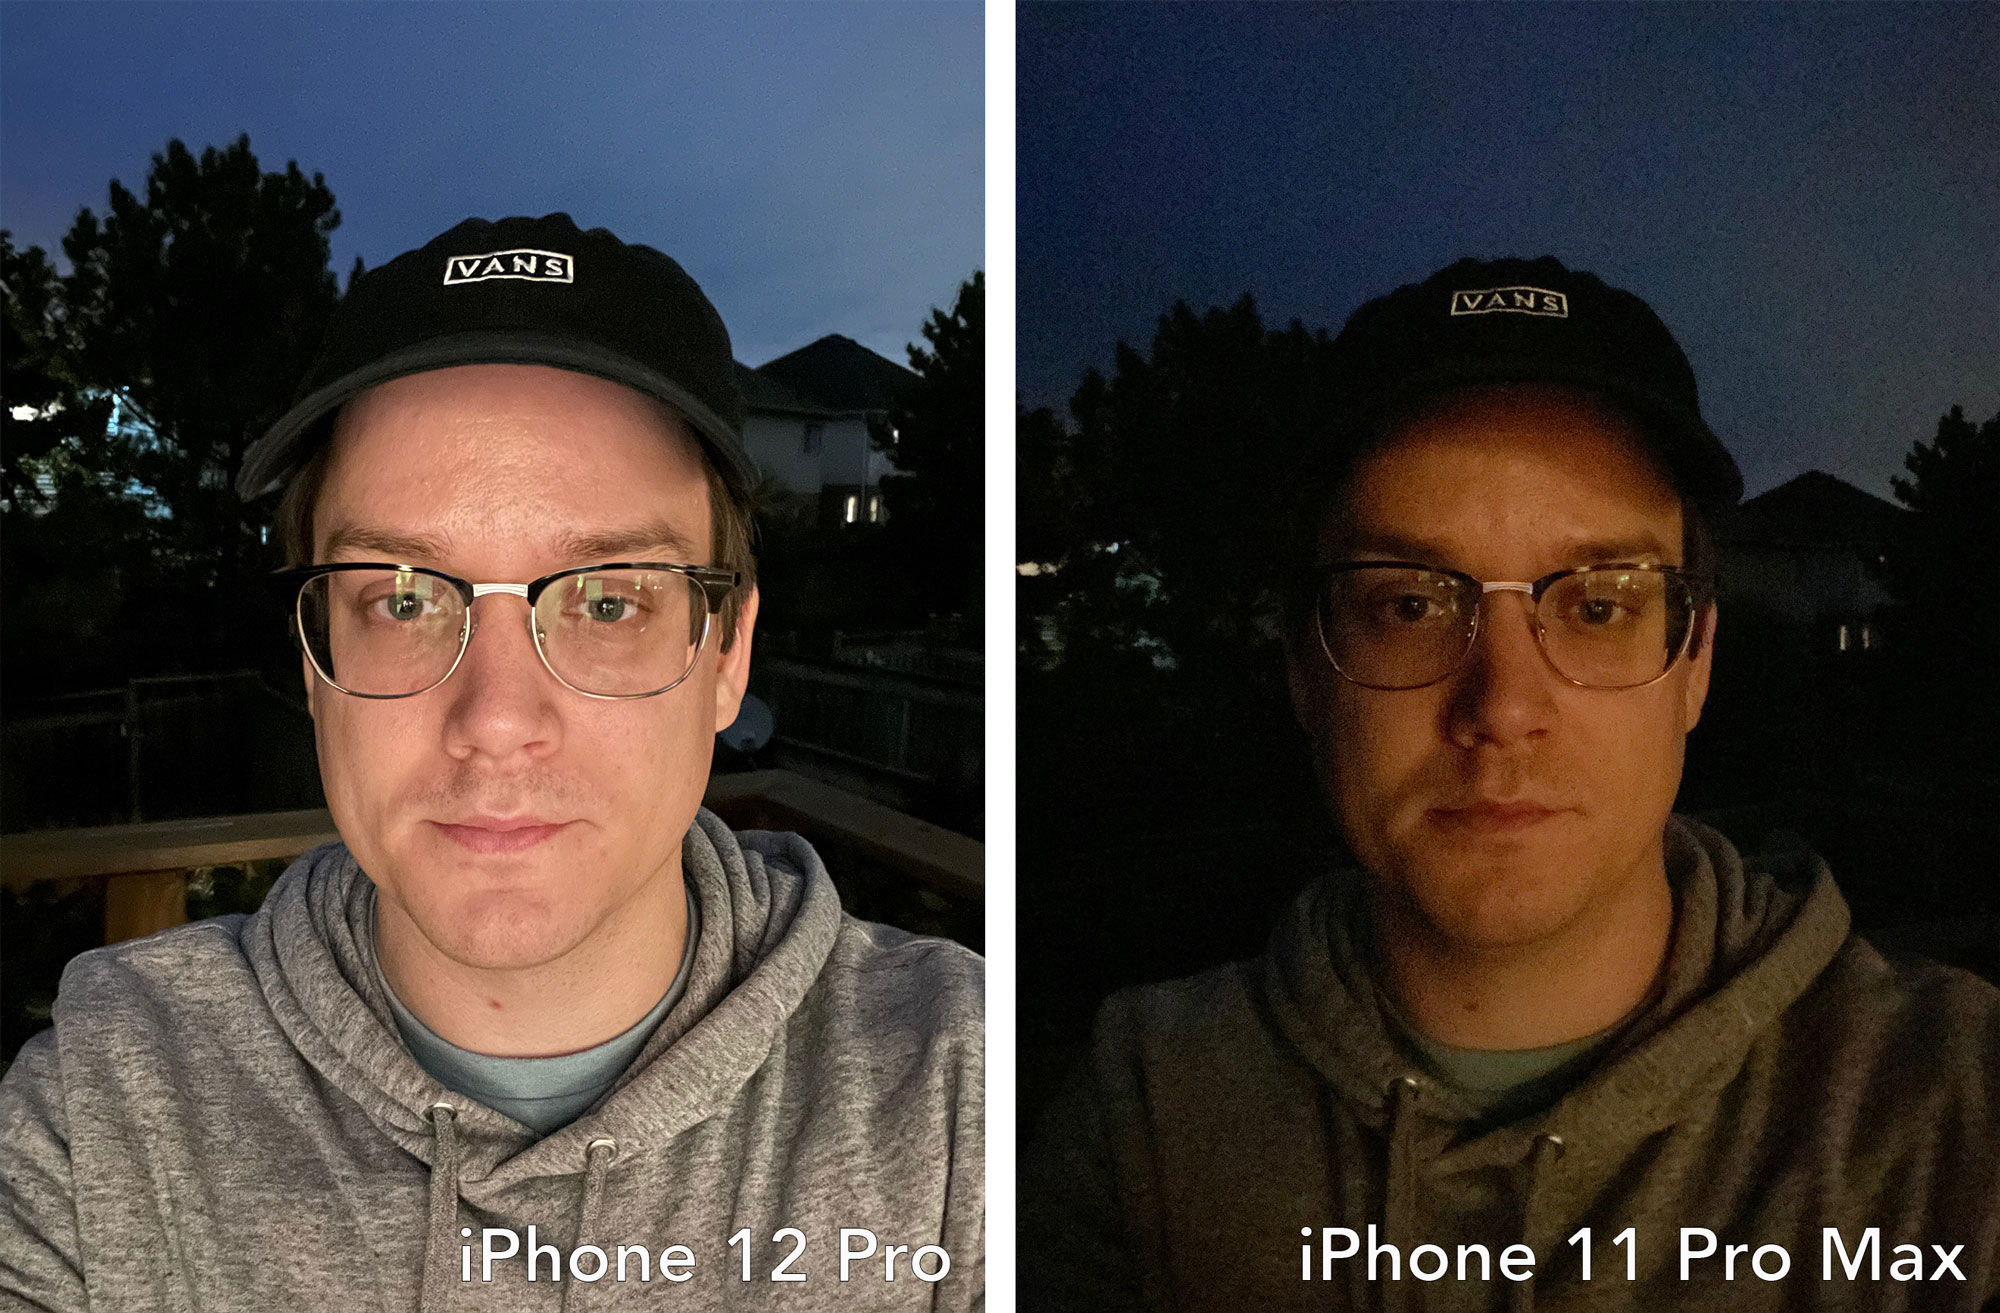 iPhon 12 vs iPhone 11 Pro Max selfie shooter